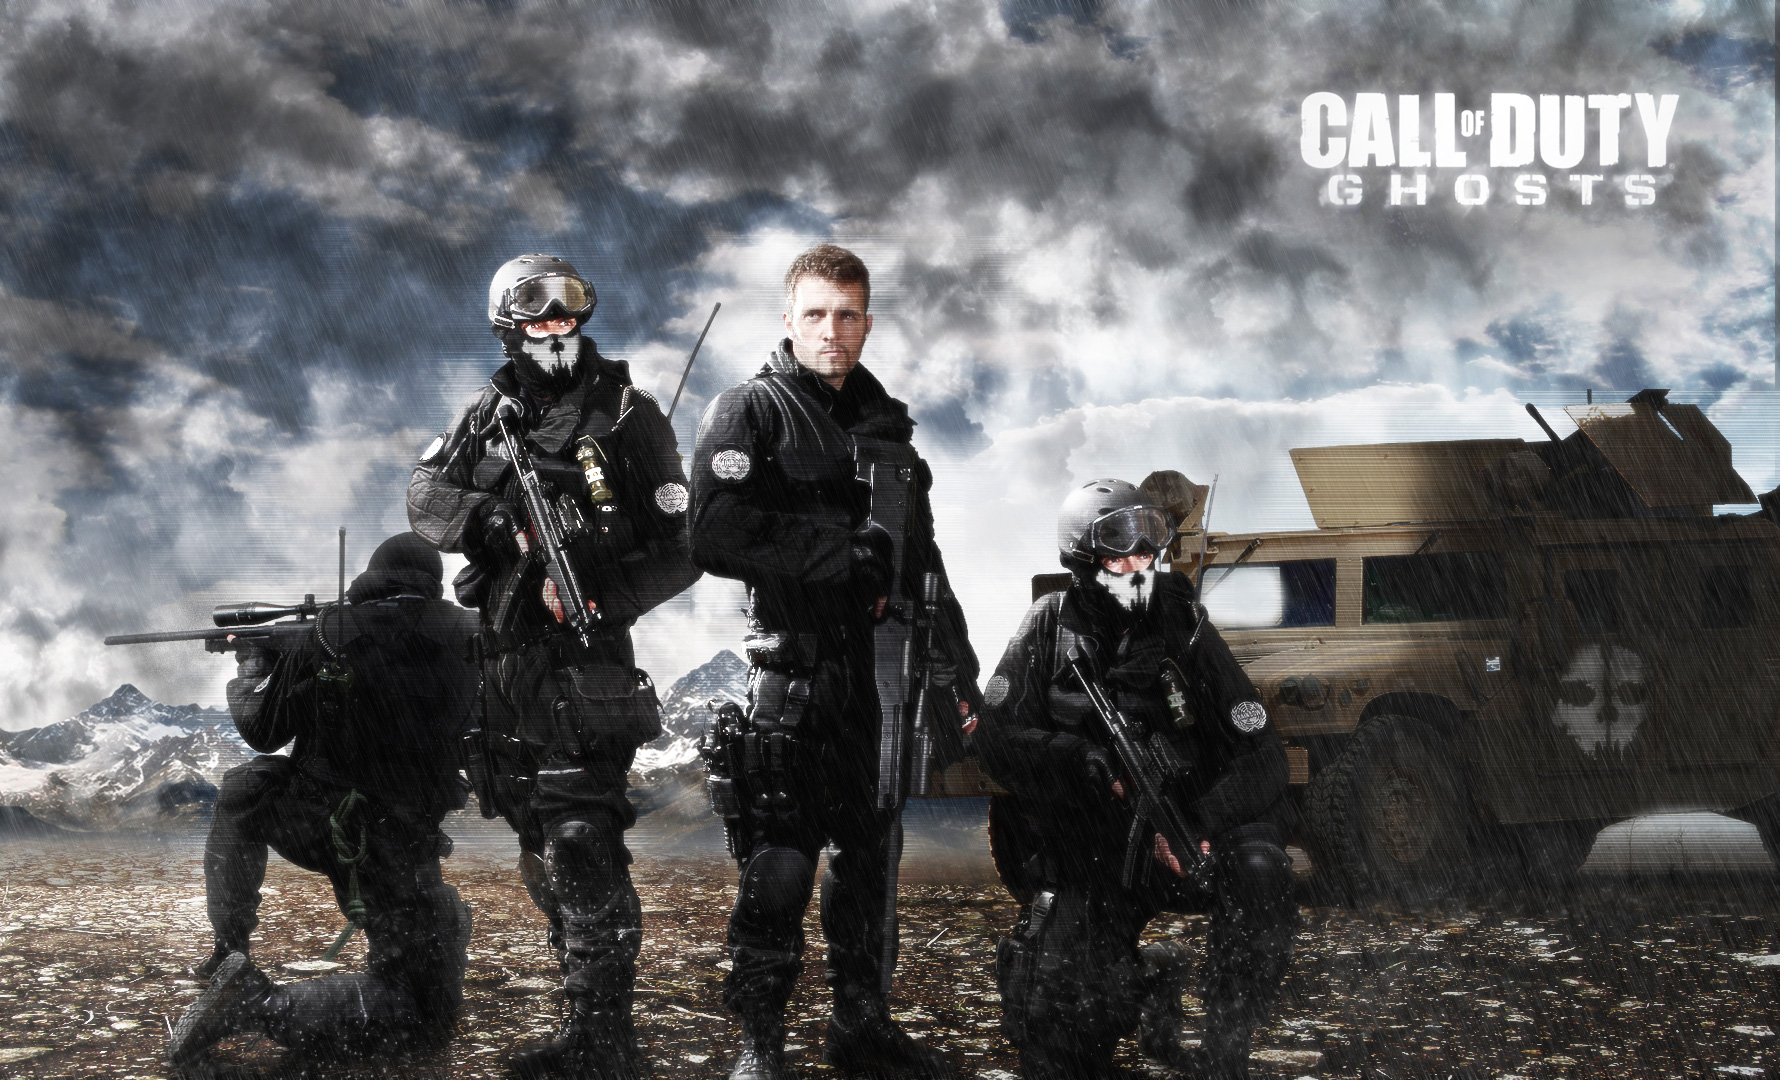 Free Download Call Of Duty Ghosts 6 Desktop Background Trendy